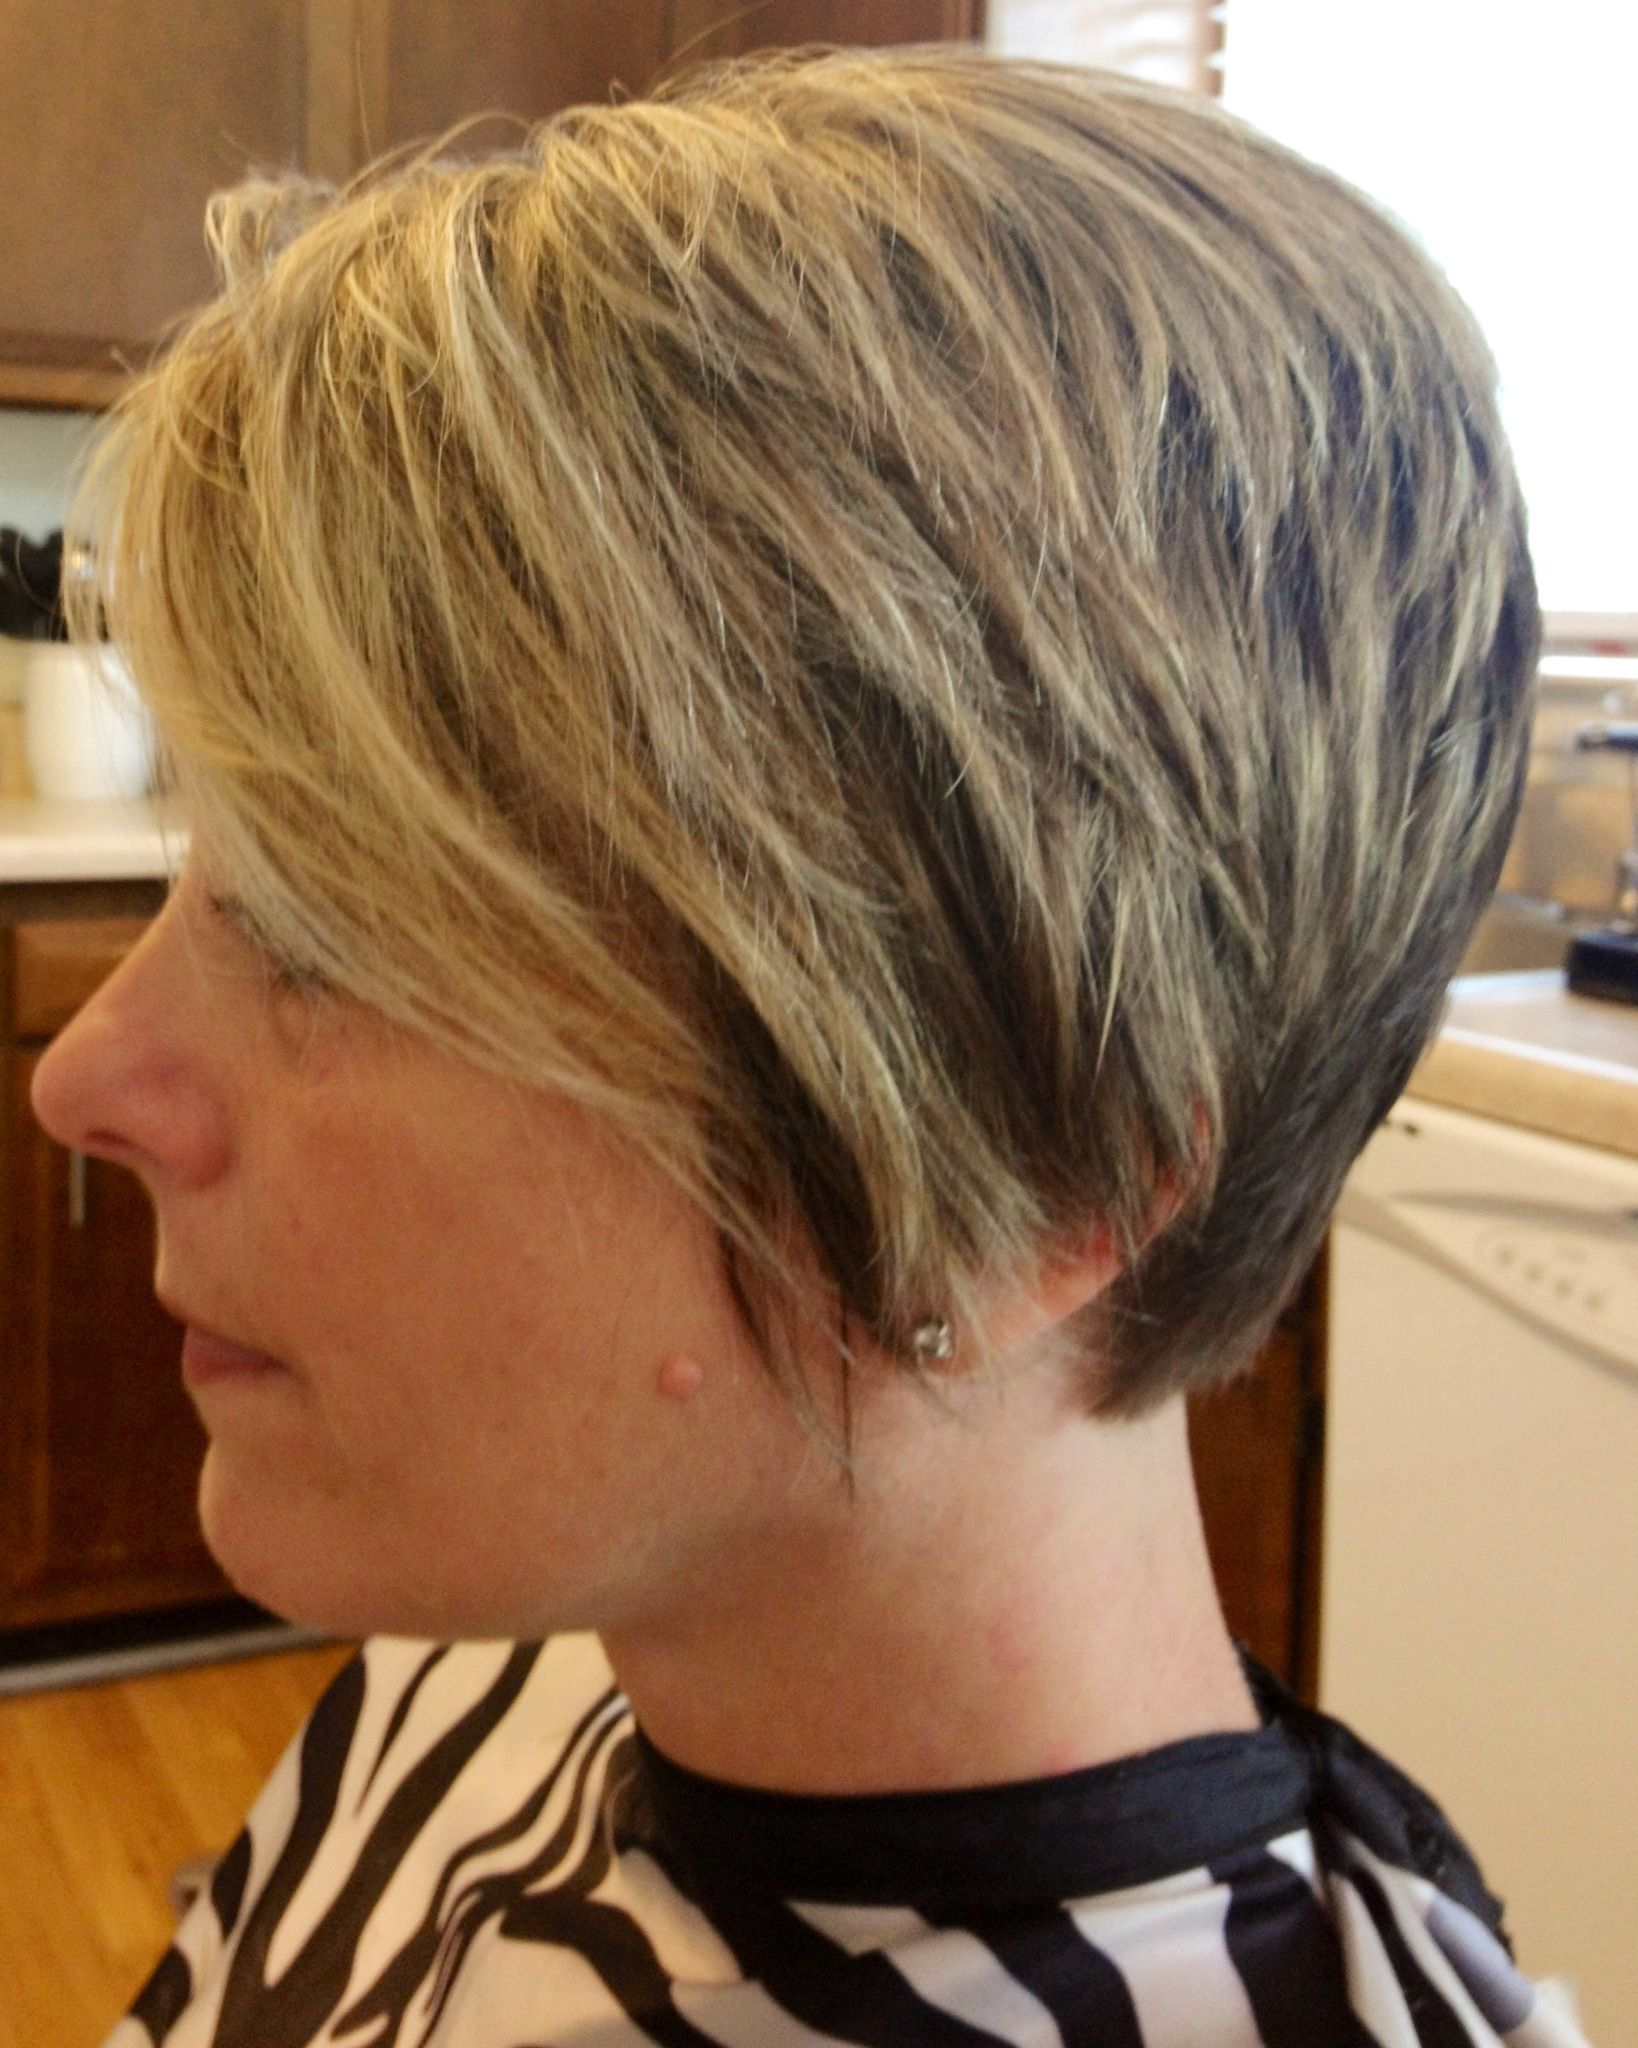 short hairstyle with ears covered | primpy | medium hair